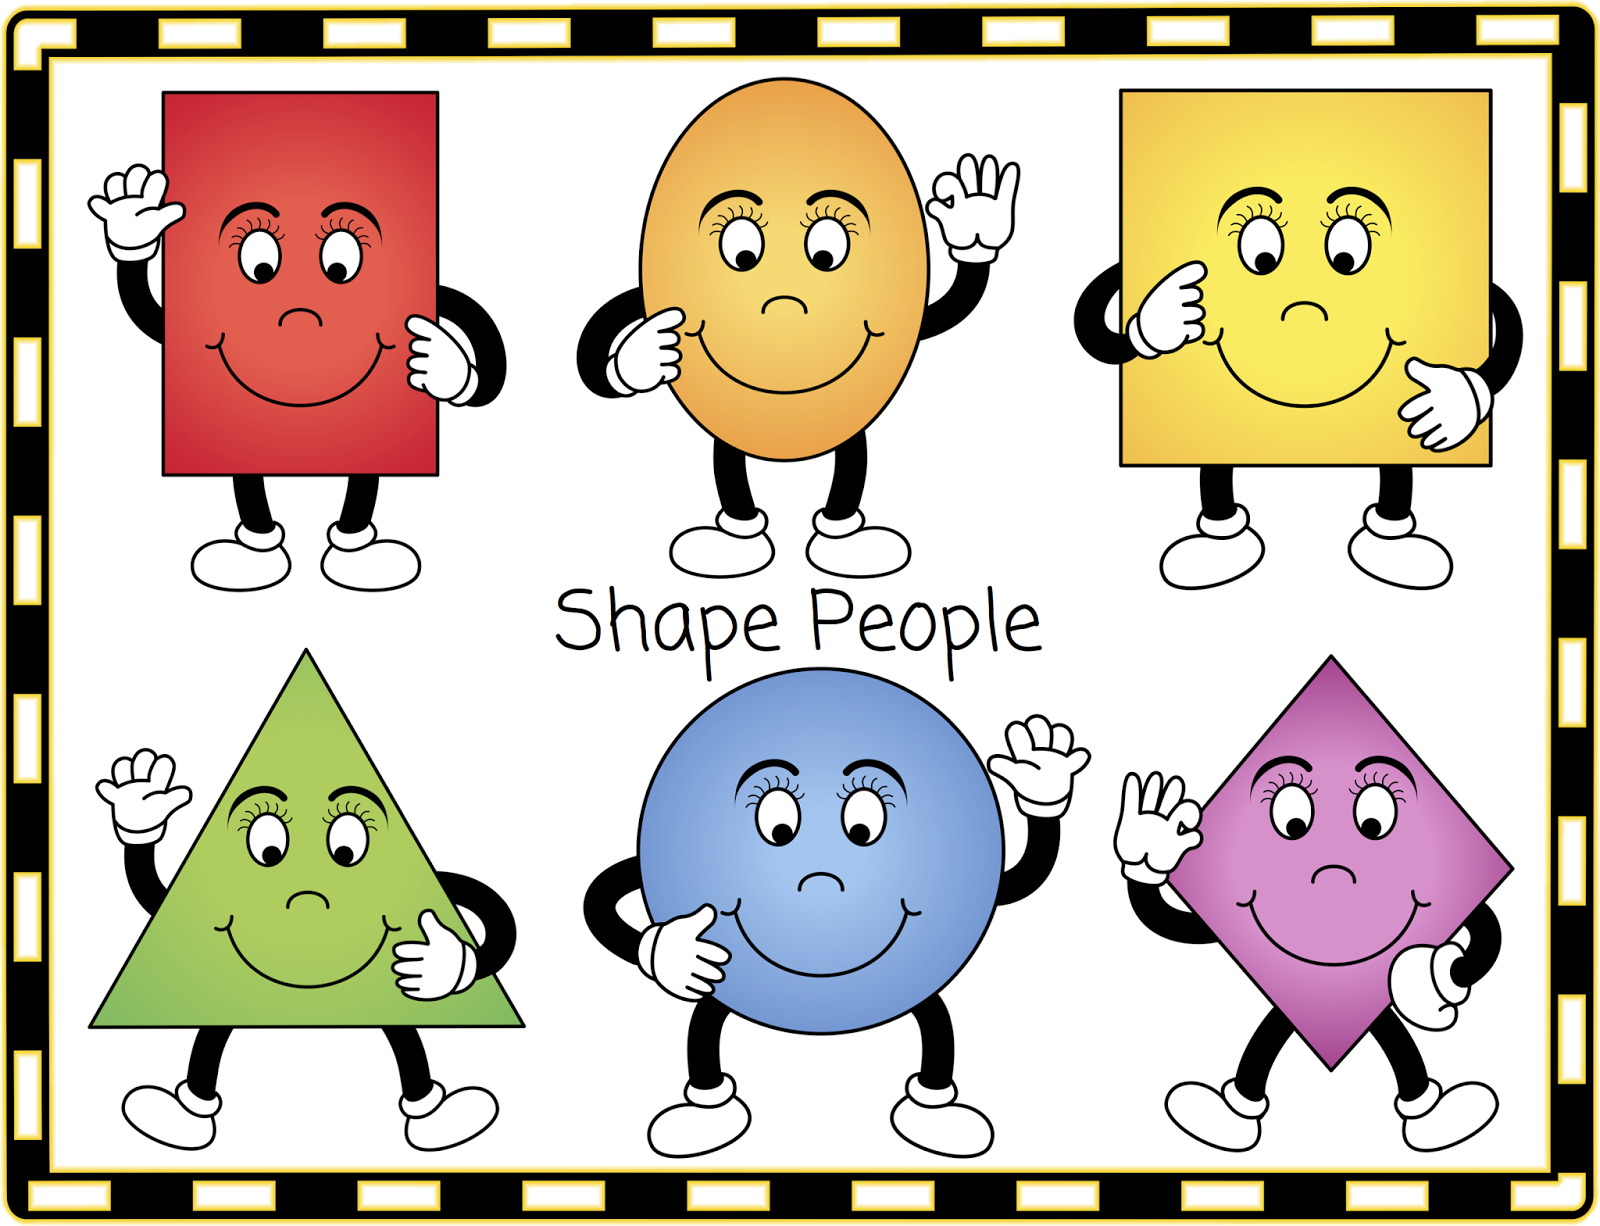 Free shapes clipart picture freeuse stock Free Shapes Cliparts, Download Free Clip Art, Free Clip Art on ... picture freeuse stock